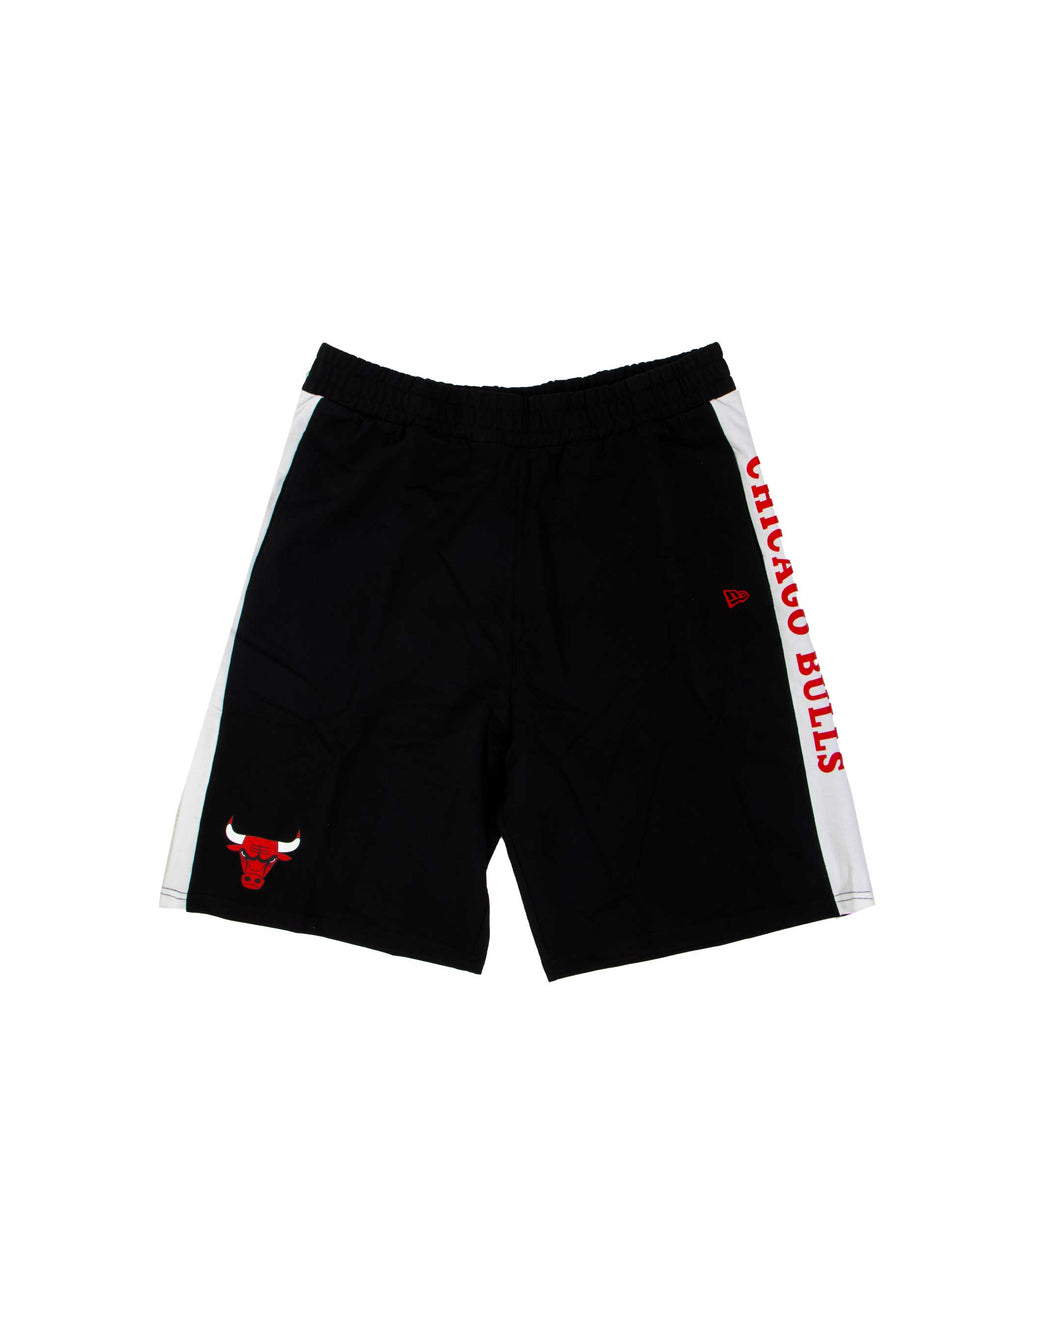 New Era Nba Contrast Short Chicahho Bulls Black White